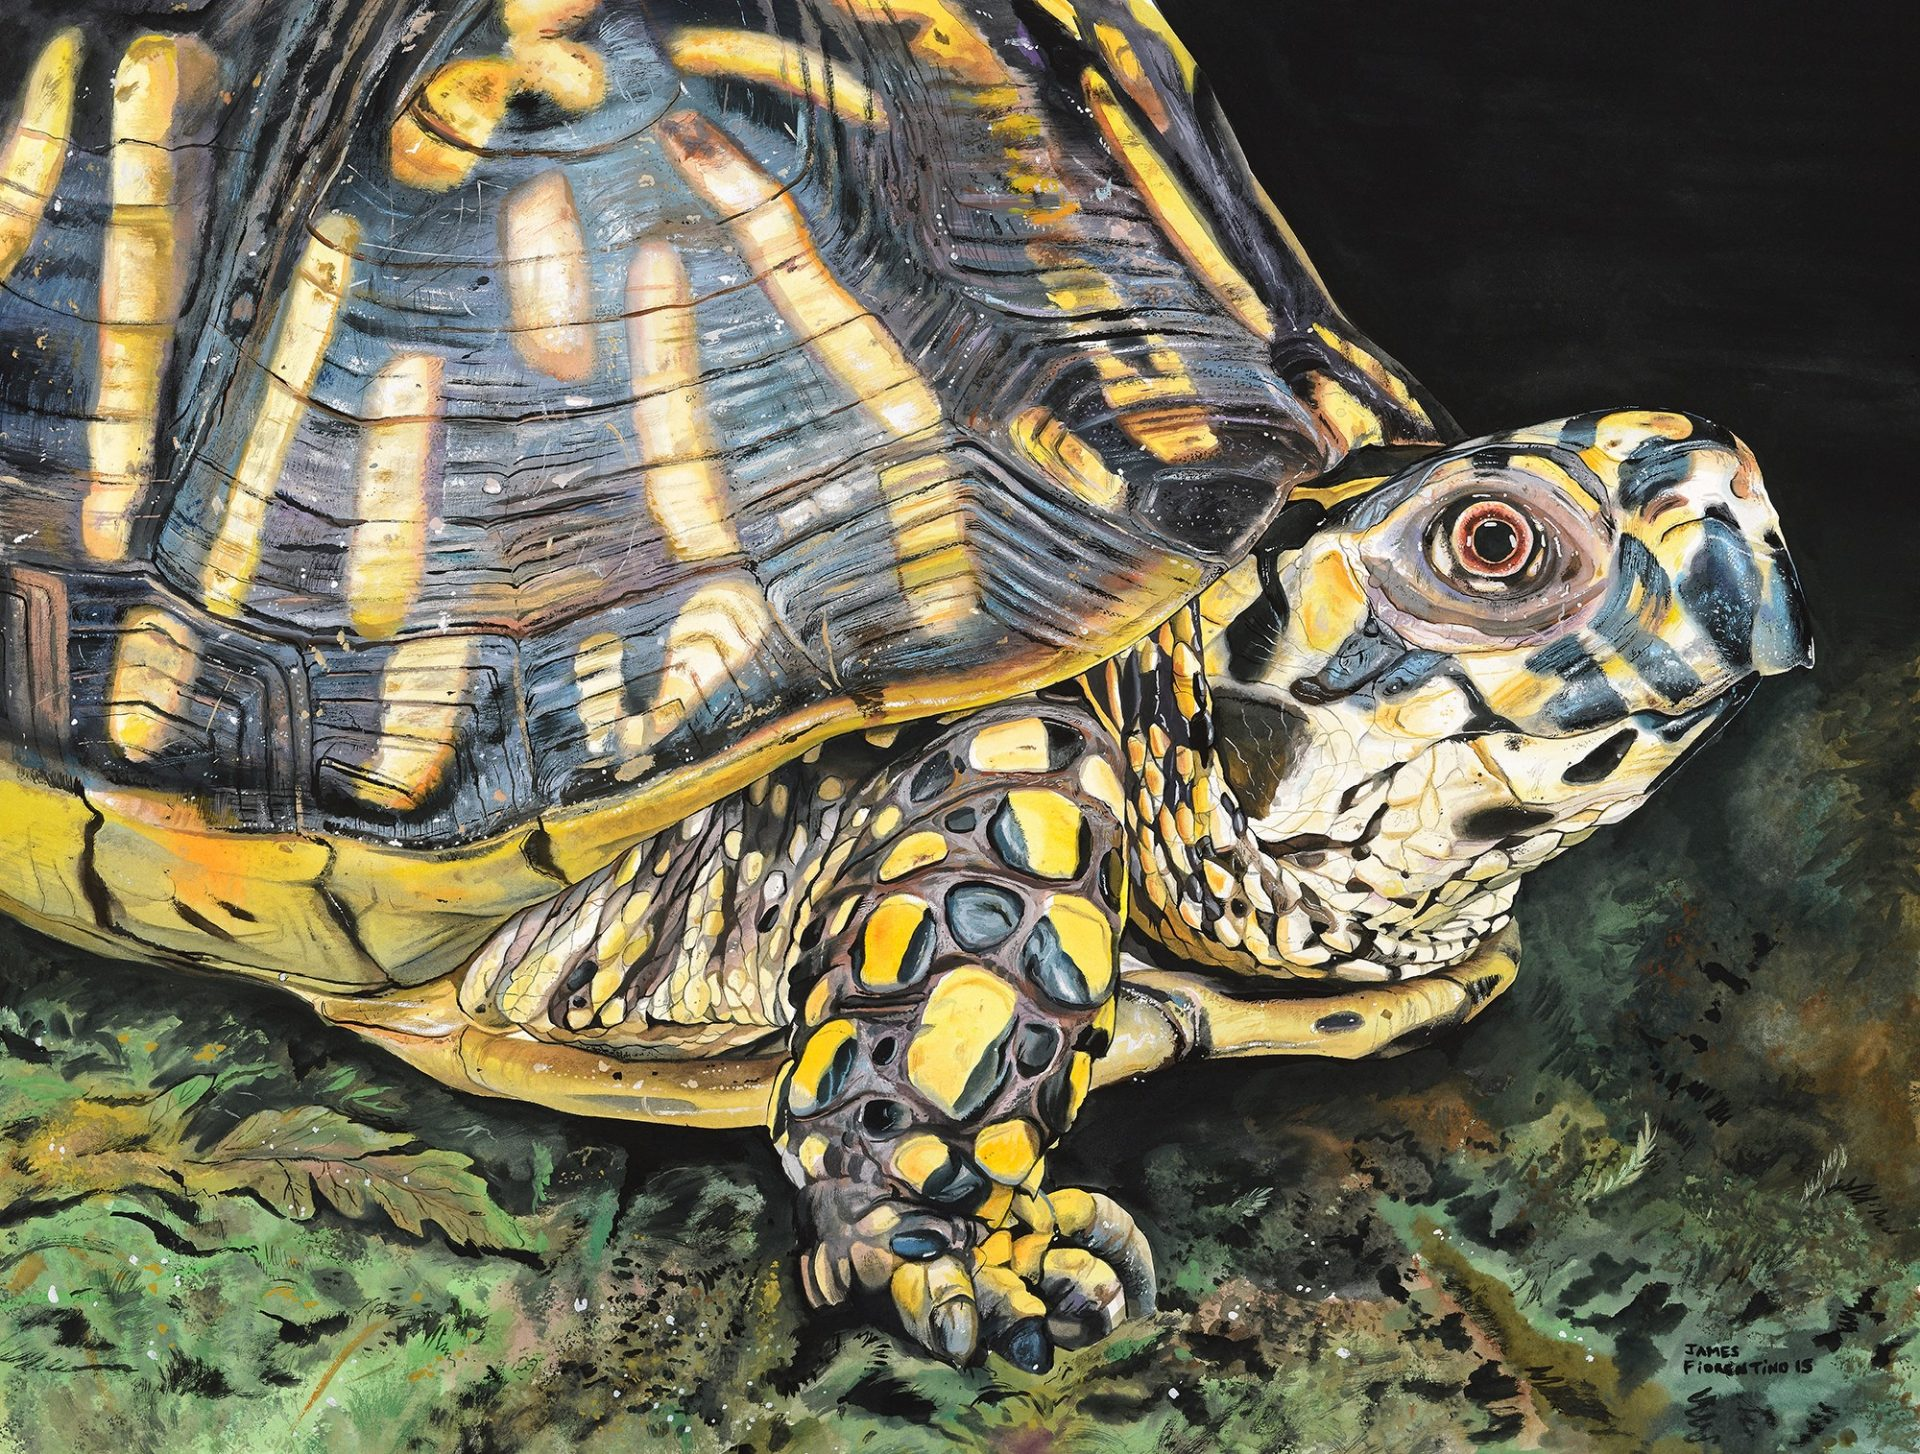 short essay on turtle A decline of turtles as we know them sea turtles are large air-breathing reptiles that spend the majority of their long lives in the open ocean waters.